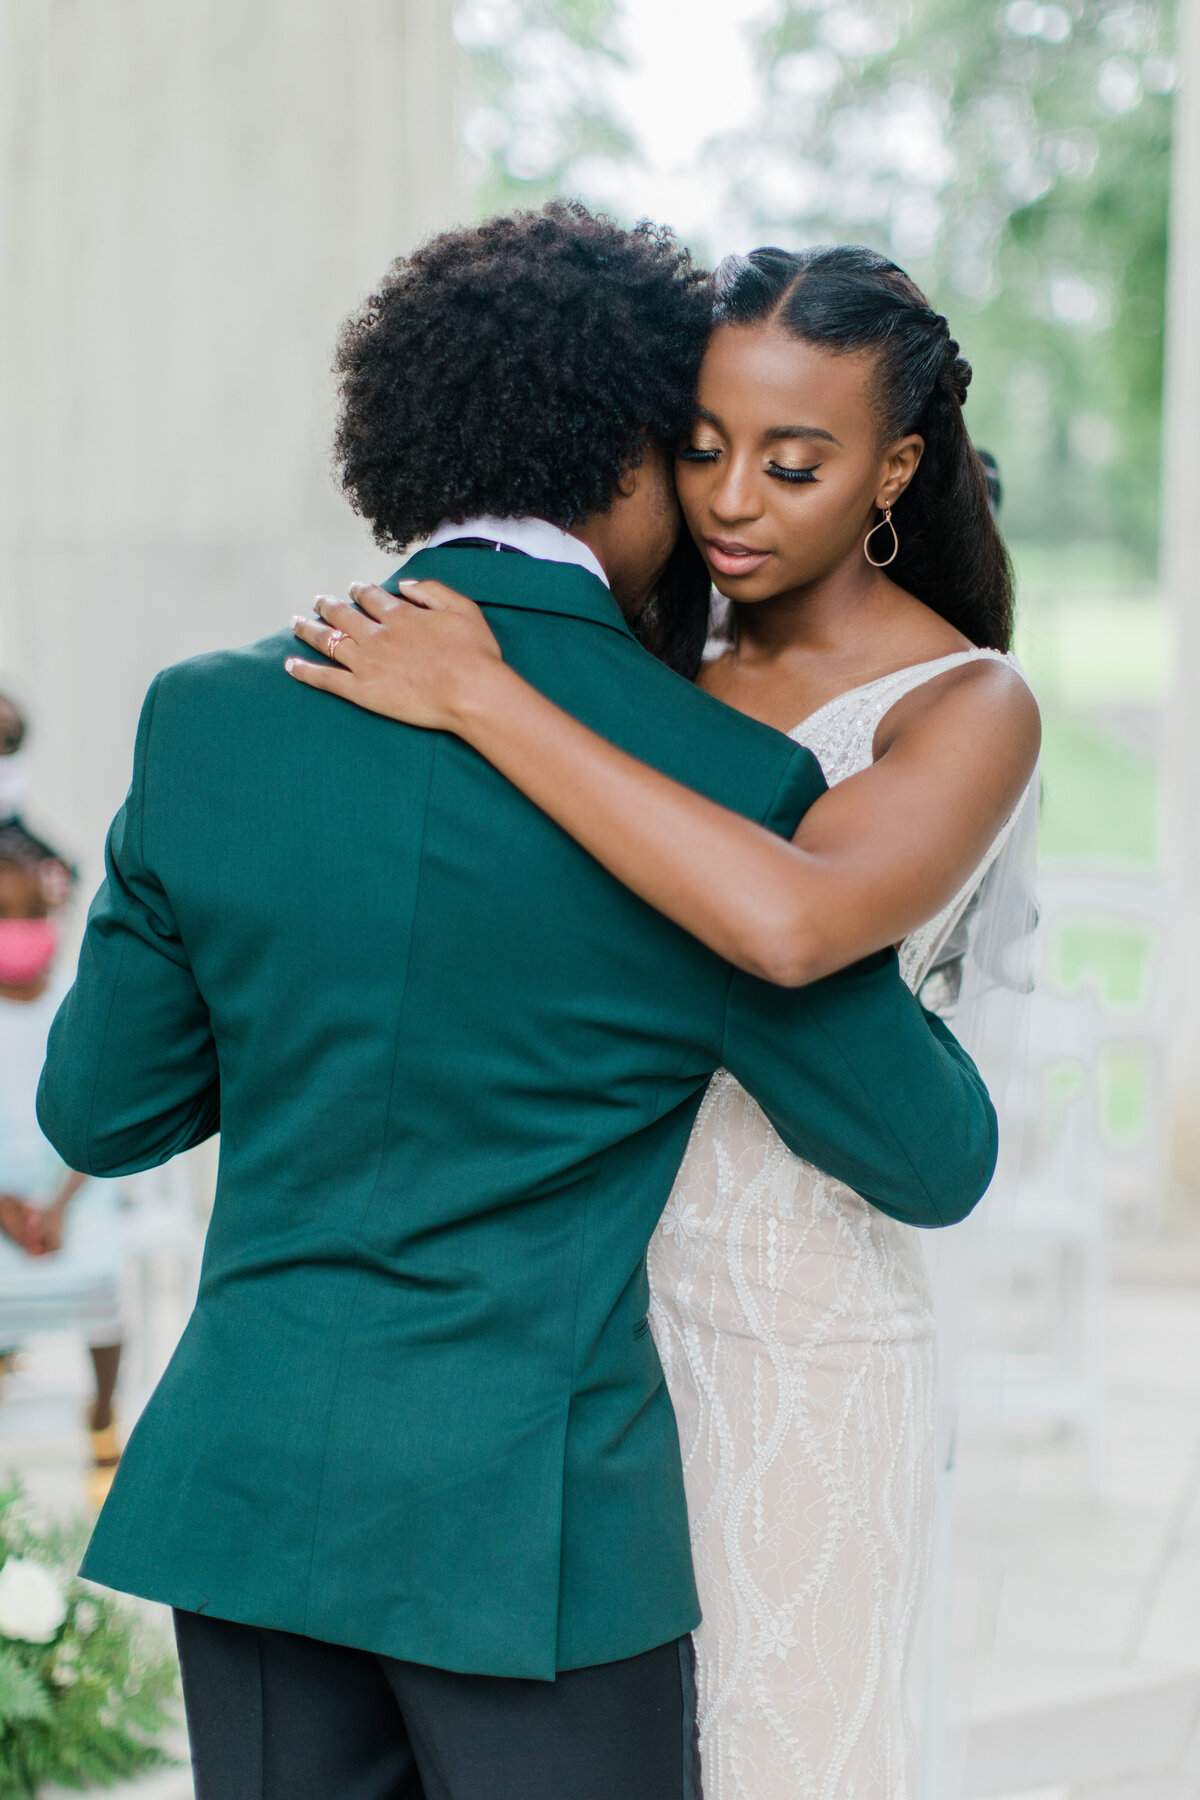 Solomon_Tkeyah_Micro_COVID_Wedding_Washington_DC_War_Memorial_MLK_Memorial_Linoln_Memorial_Angelika_Johns_Photography-4516